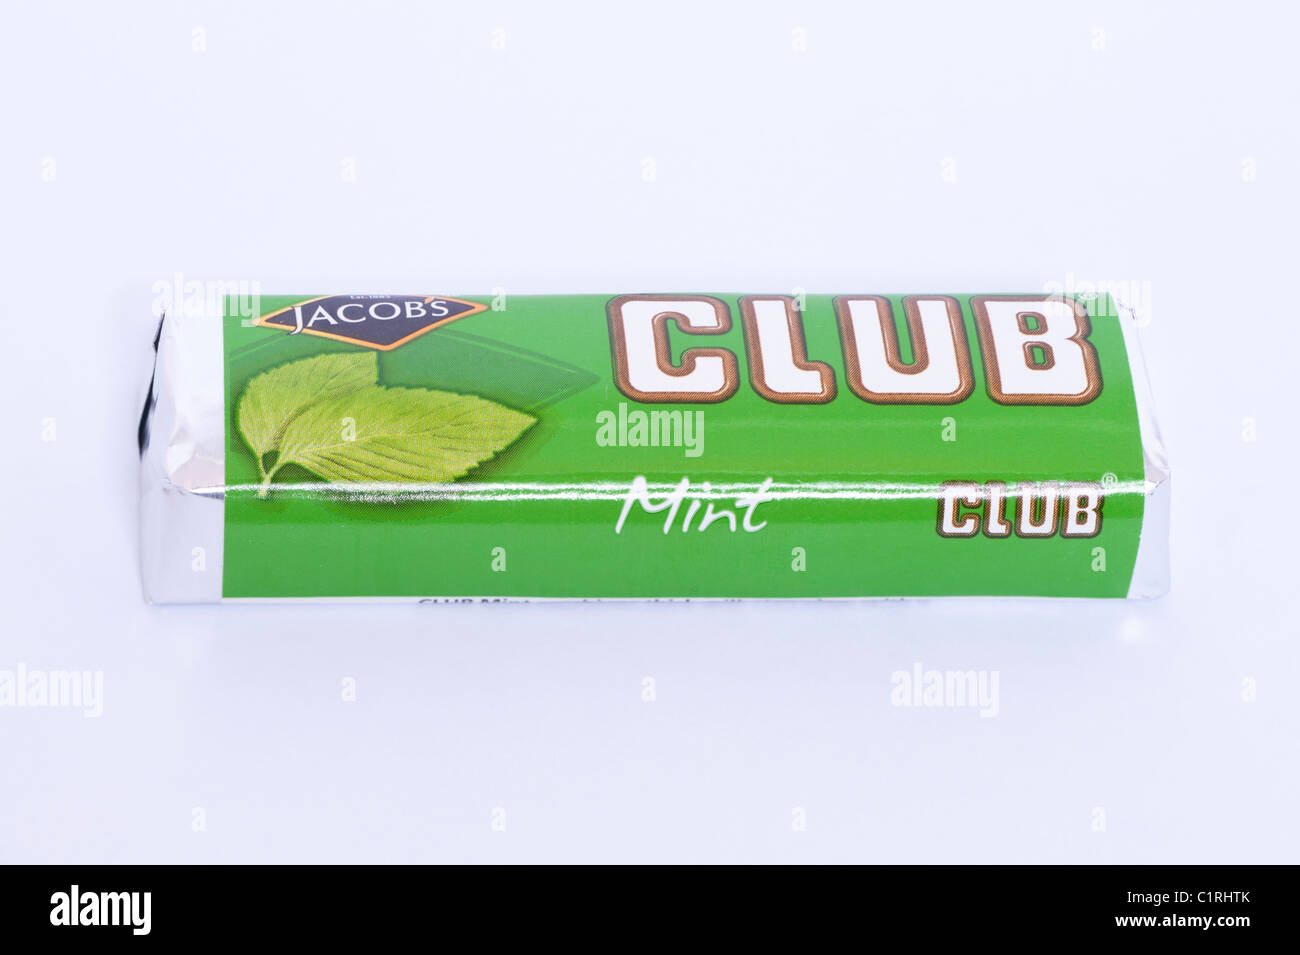 A mint chocolate flavoured Jacobs Club chocolate biscuit on a white background - Stock Image